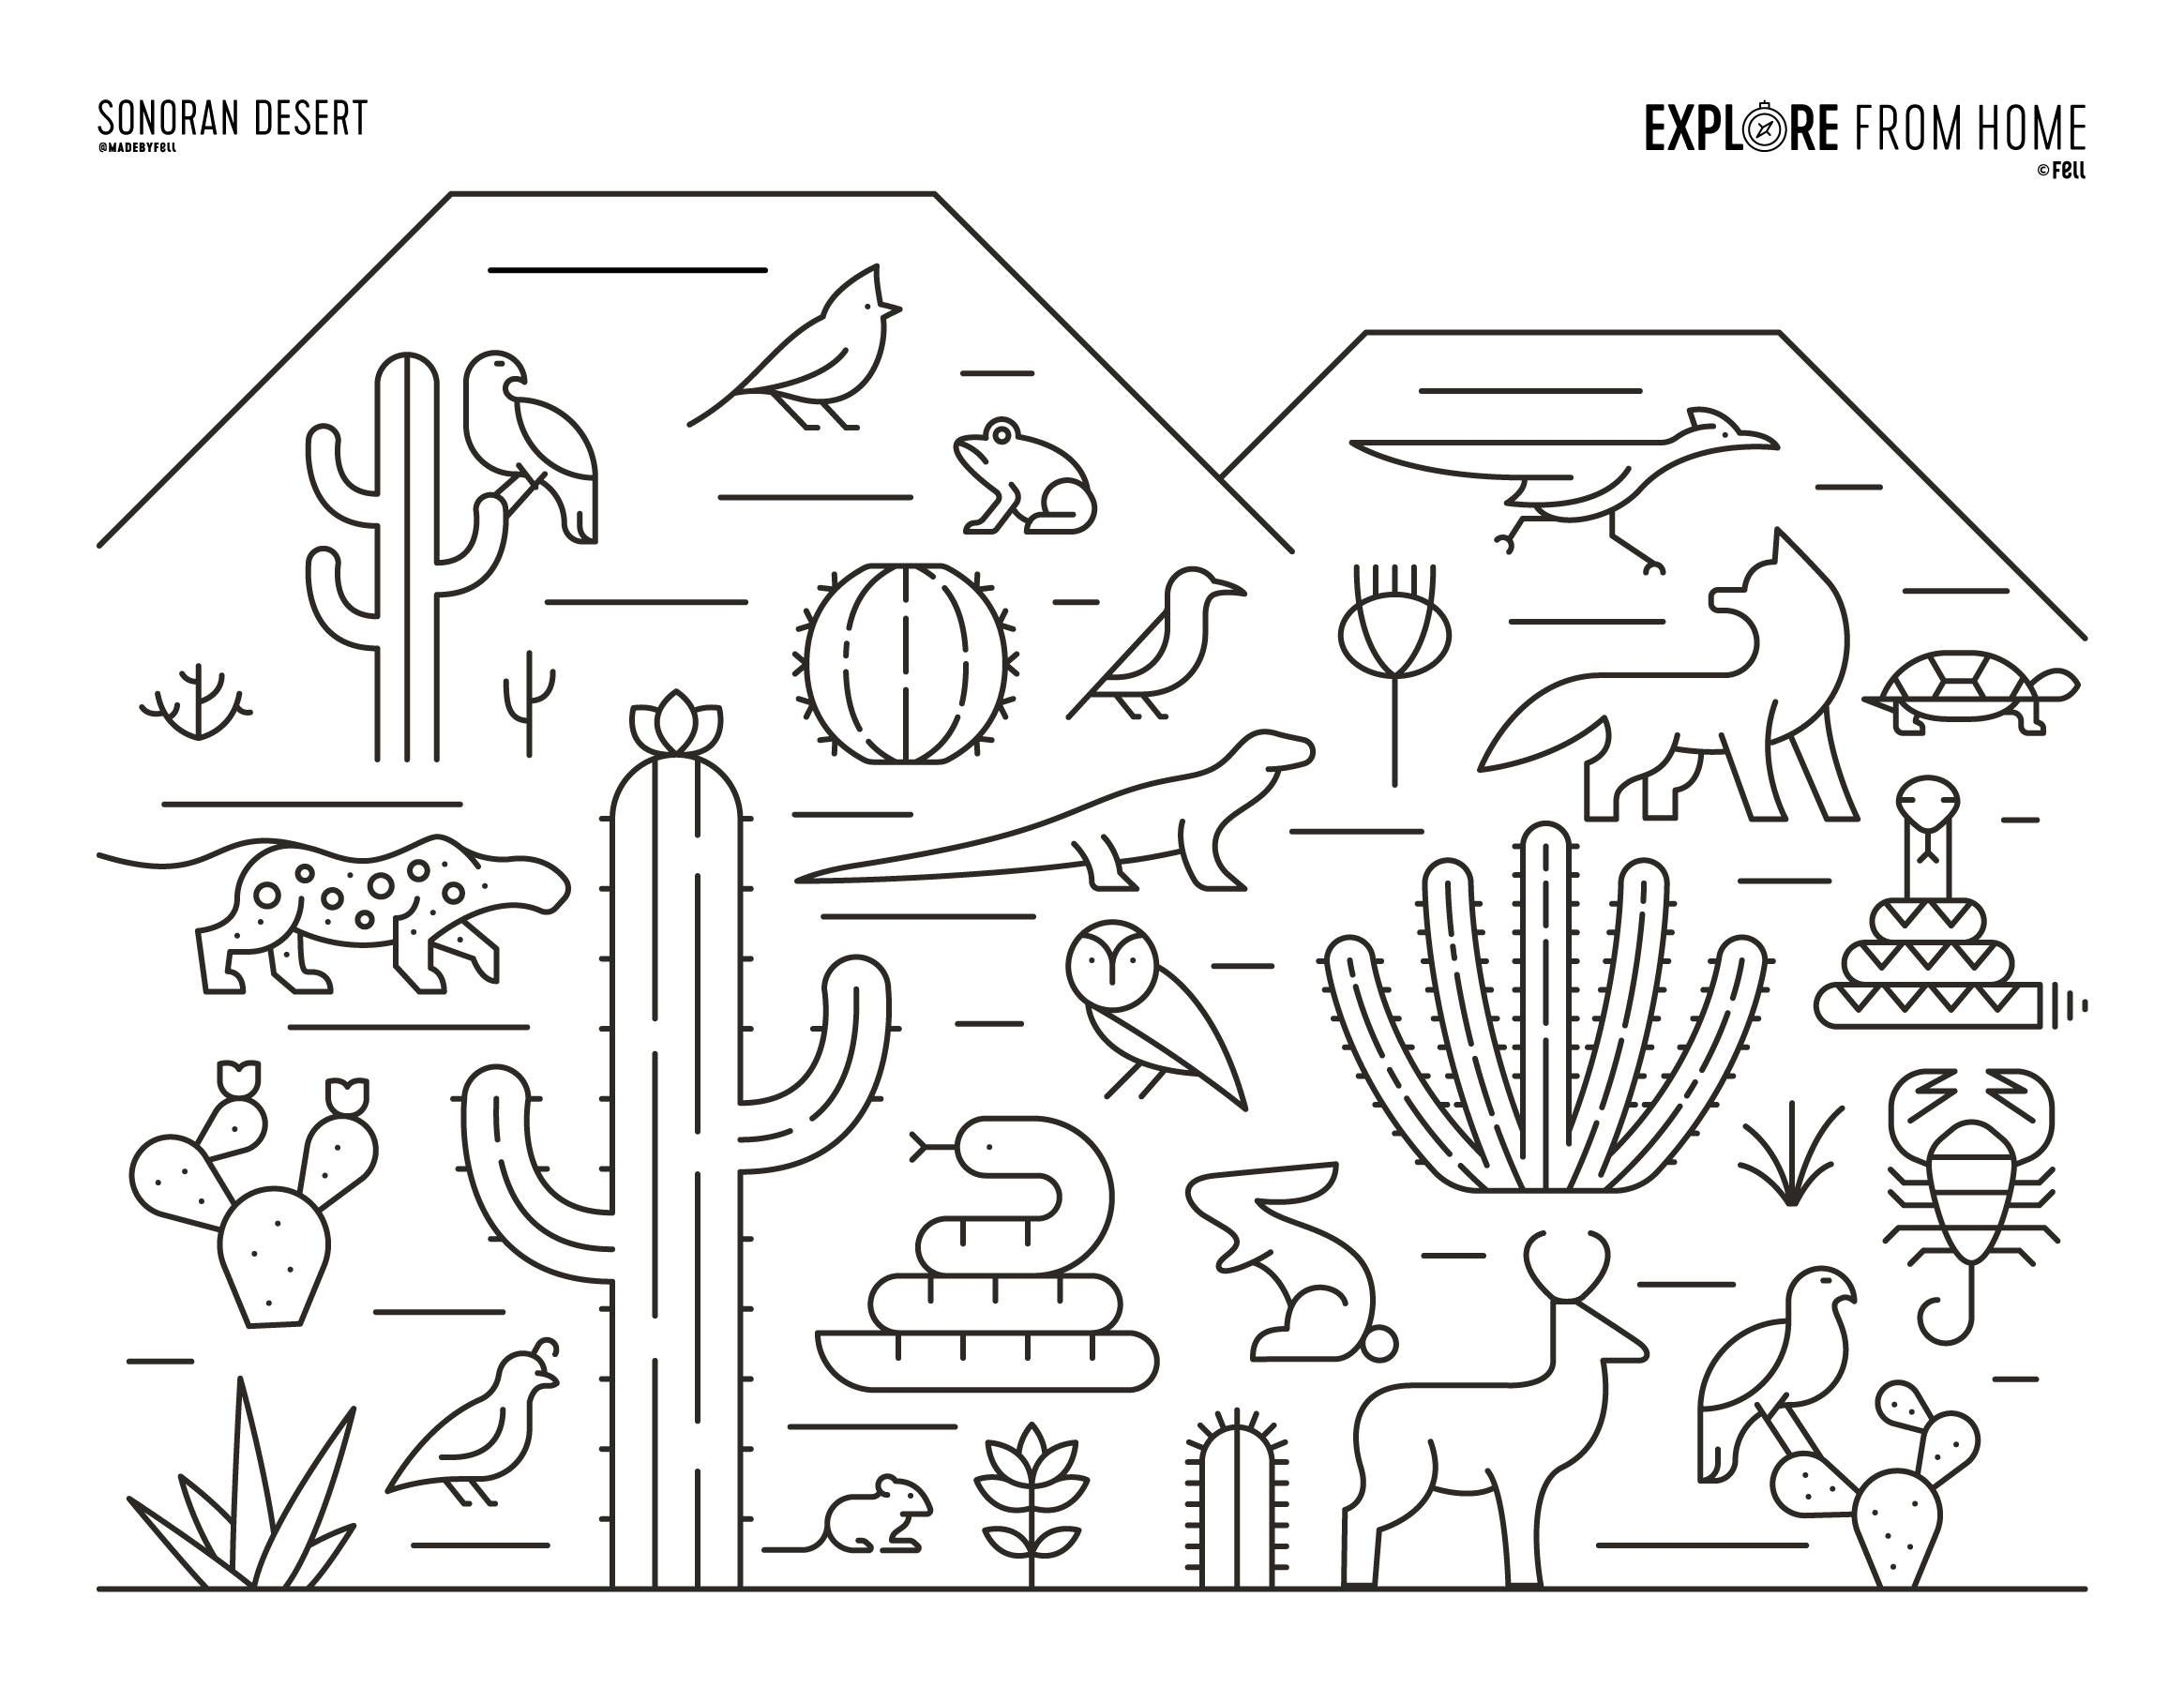 medium resolution of Biomes Sonoran Desert Coloring Page   Coloring pages